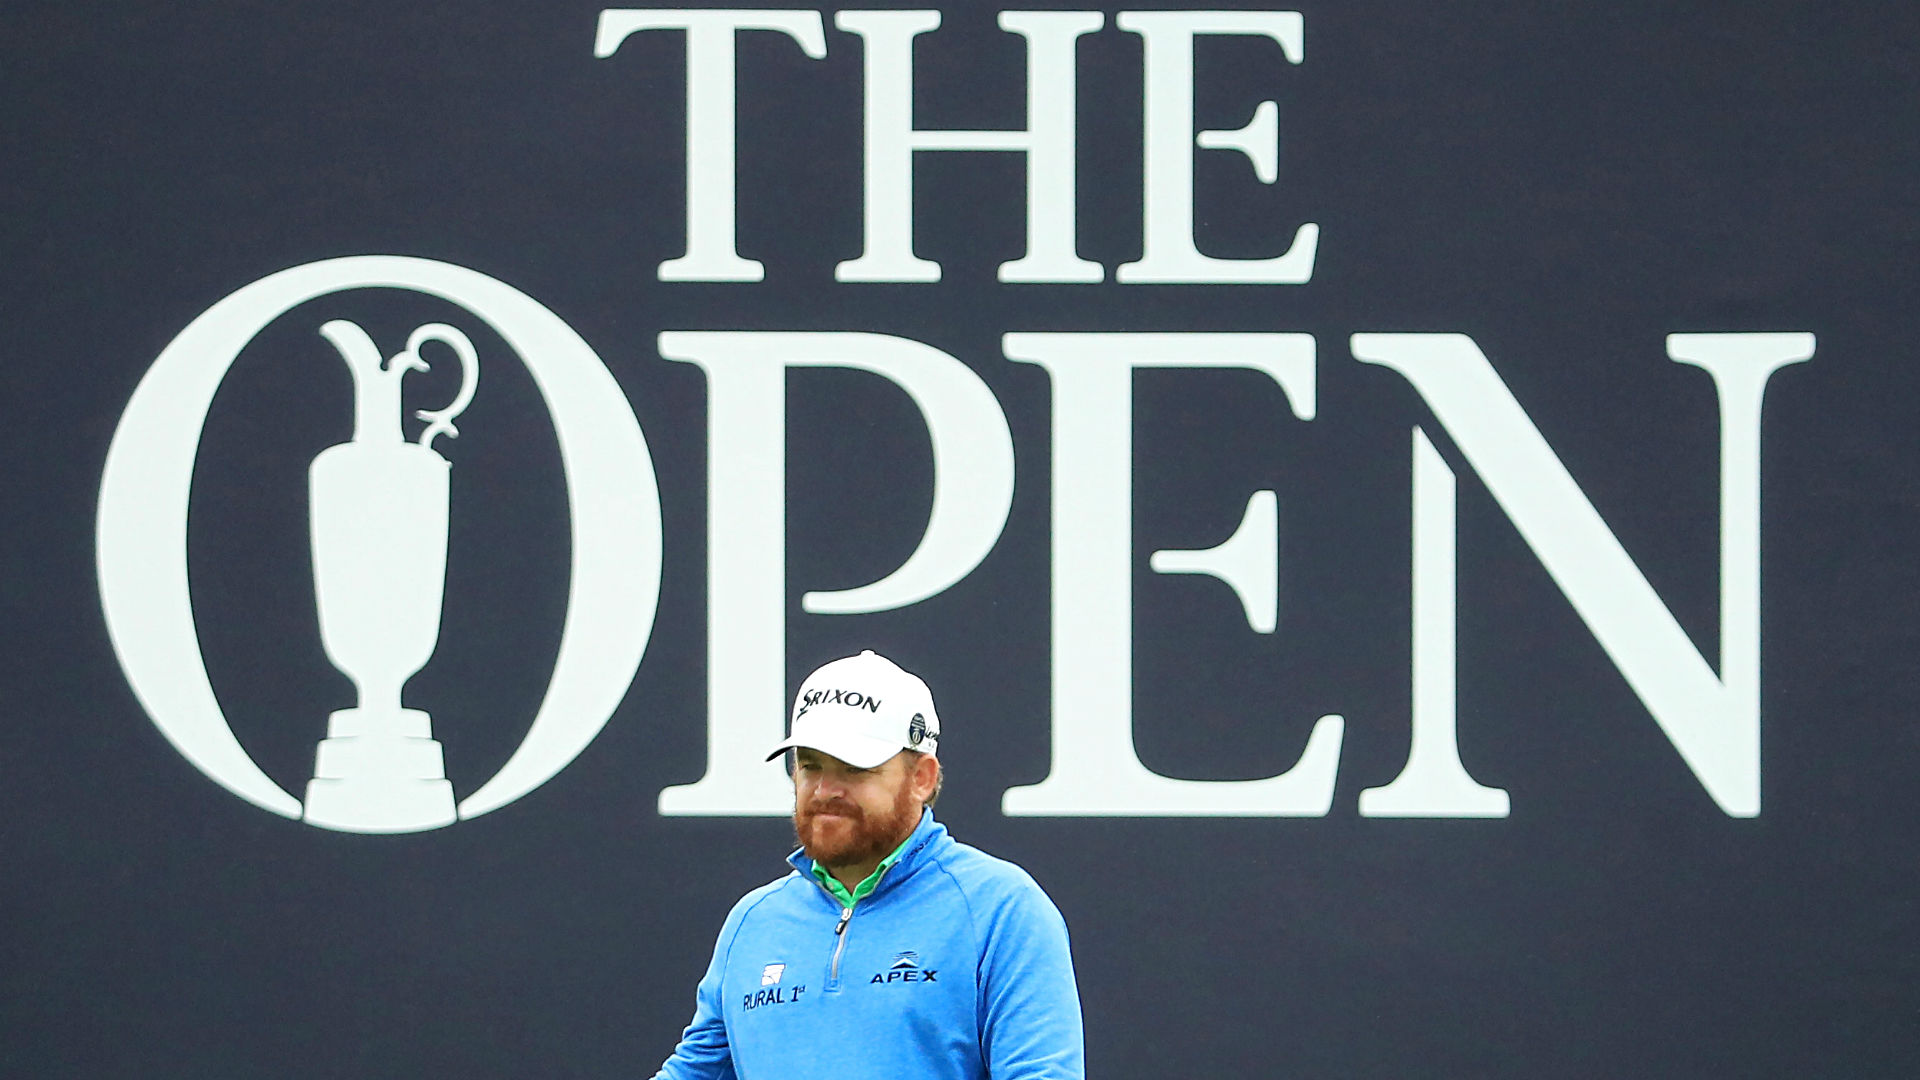 British Open 2019: Updates, highlights from Round 3 at Royal Portrush